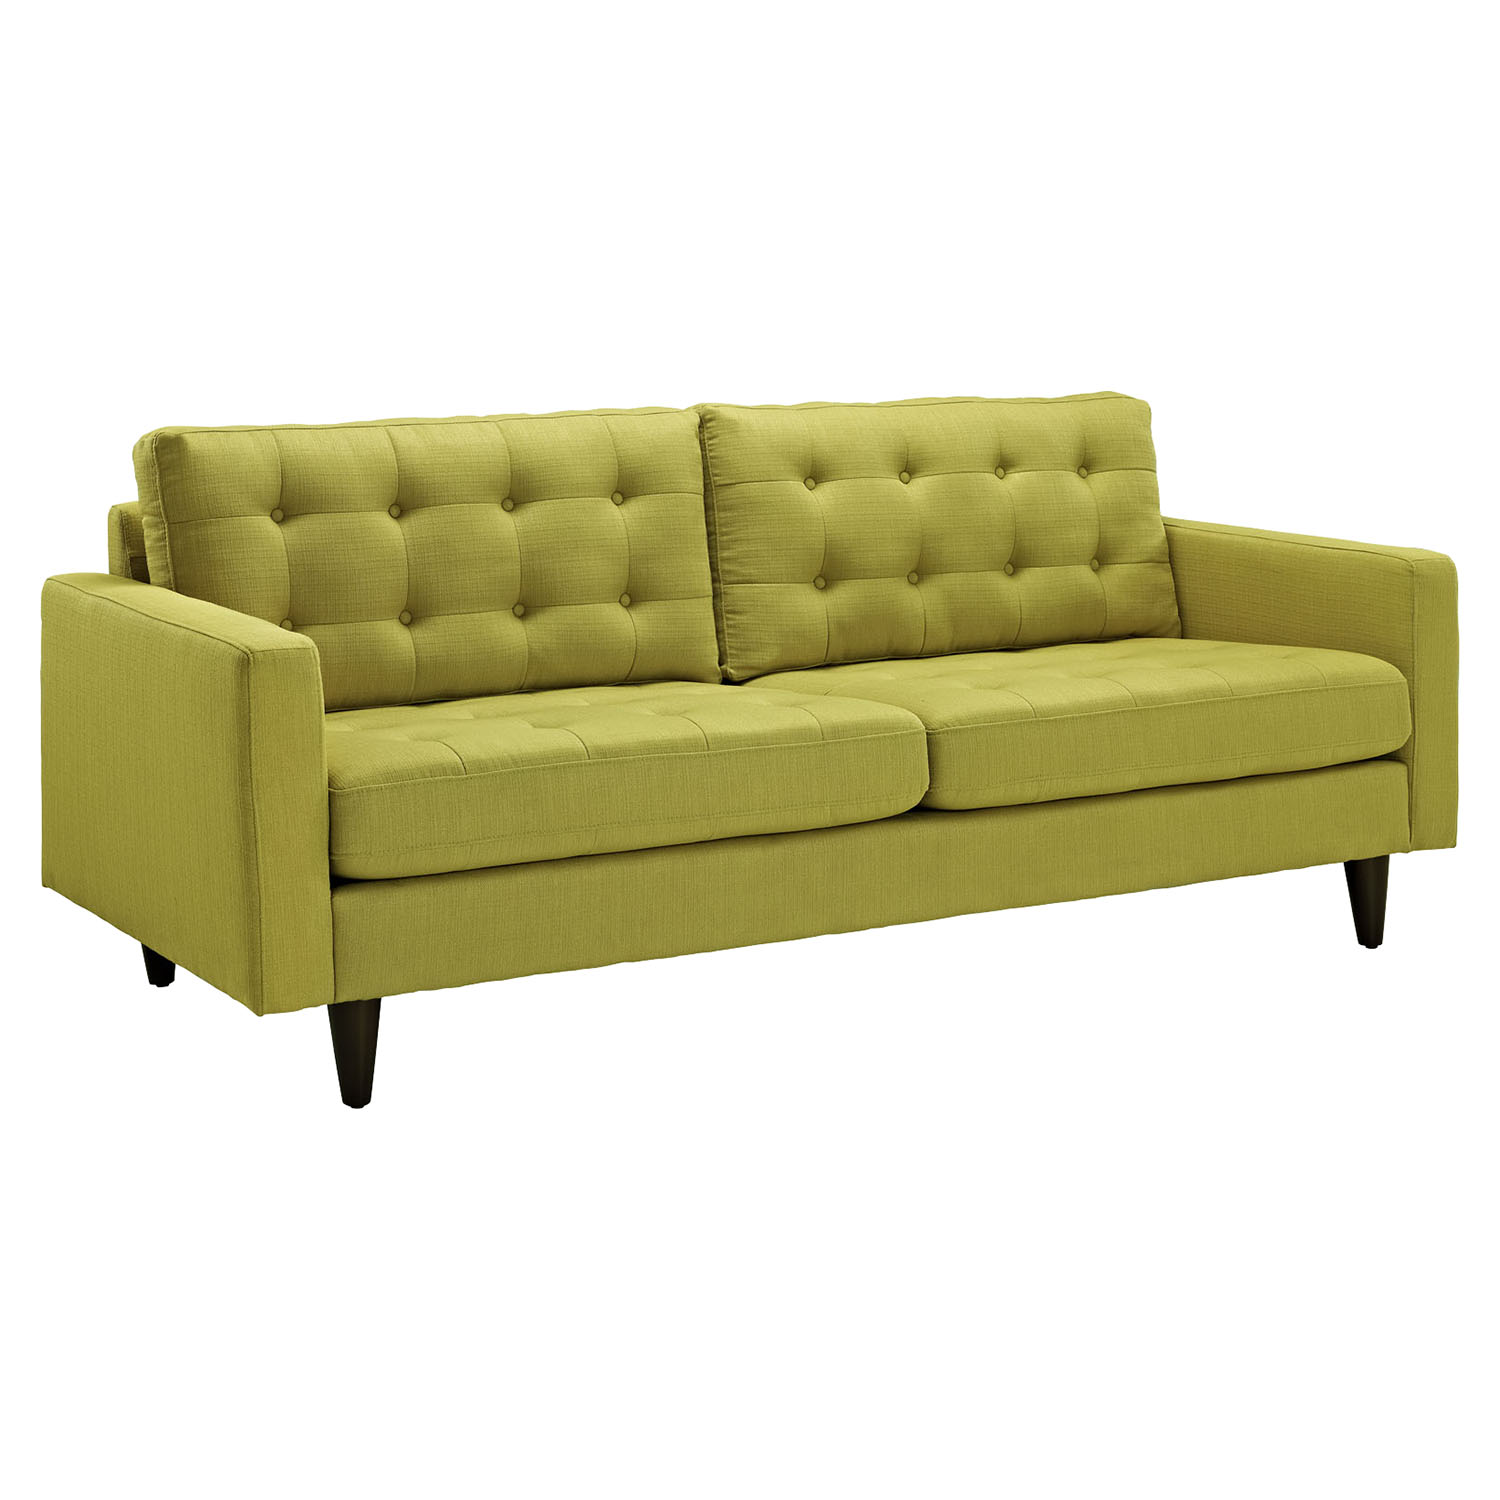 Empress Upholstered Sofa - Tufted - EEI-1011